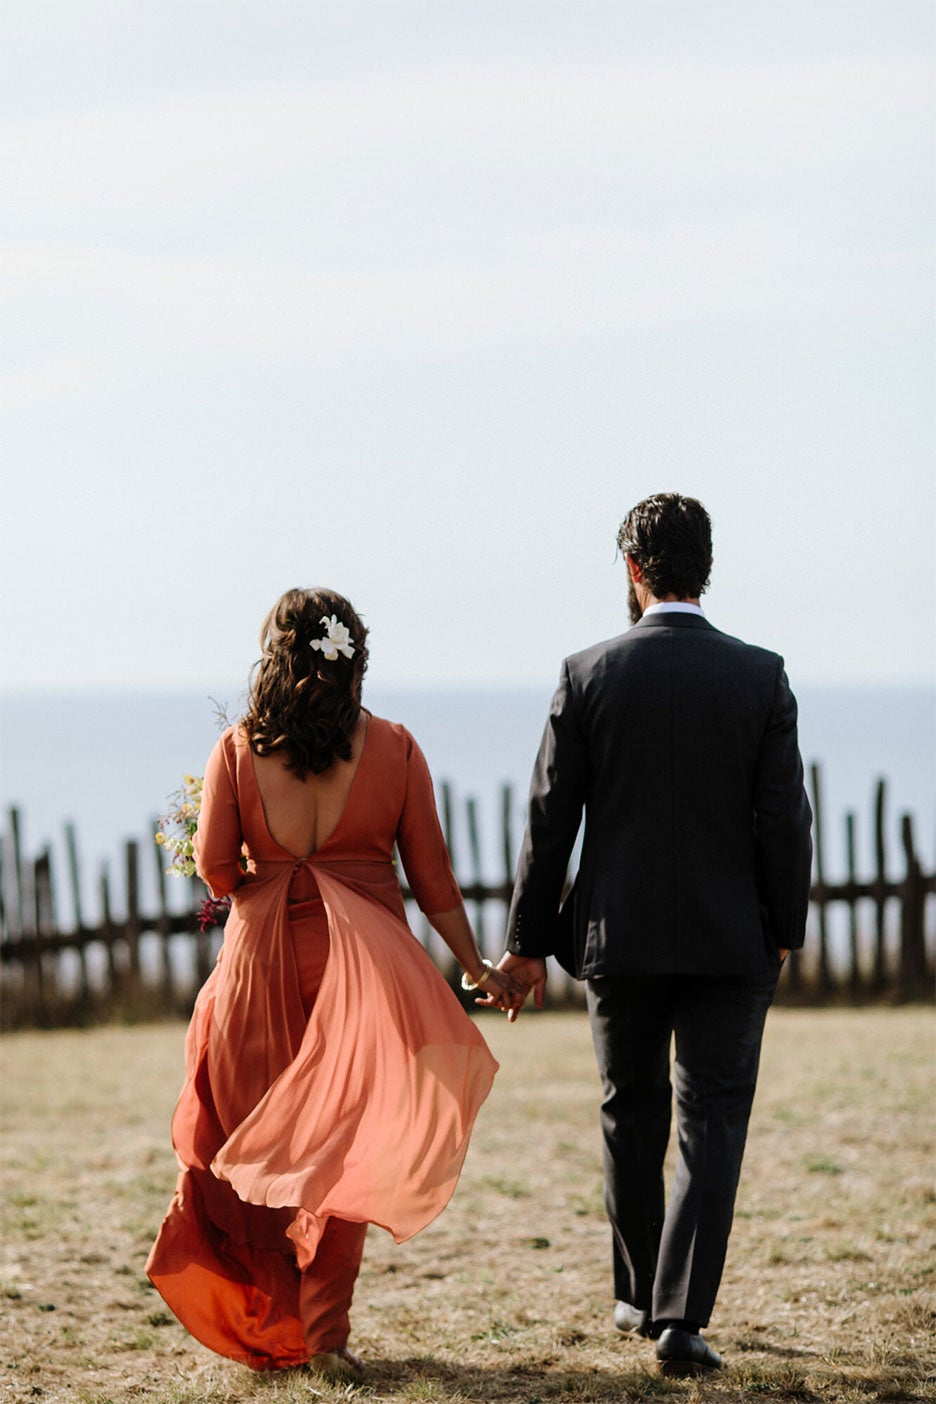 couple walking hand in hand towards fence